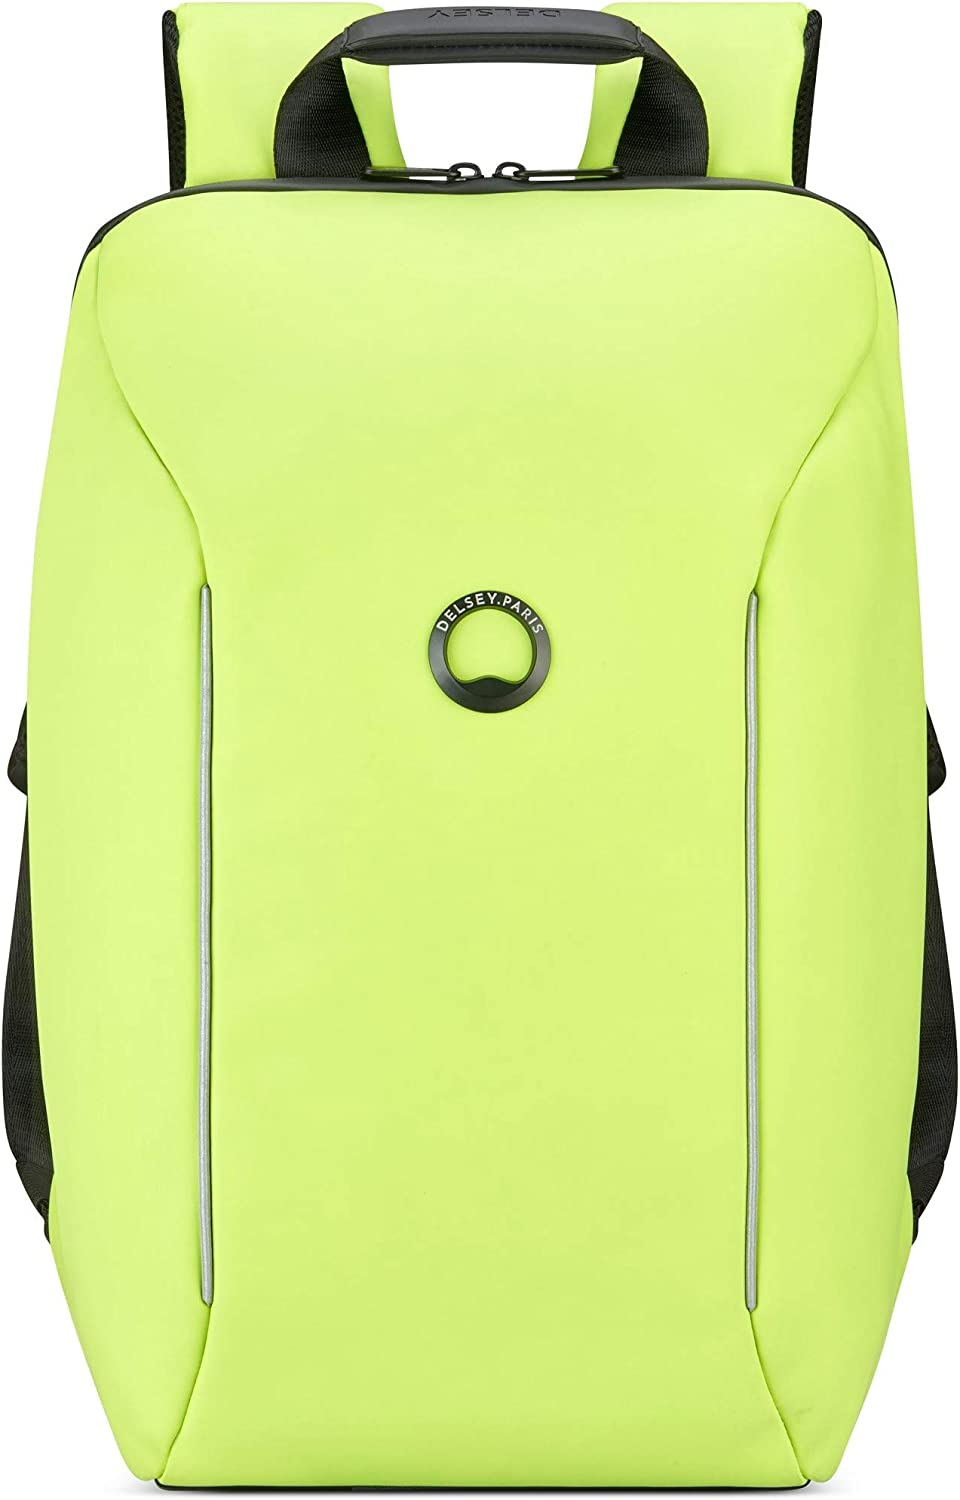 DELSEY Paris Securain Water-Resistant Laptop Backpack